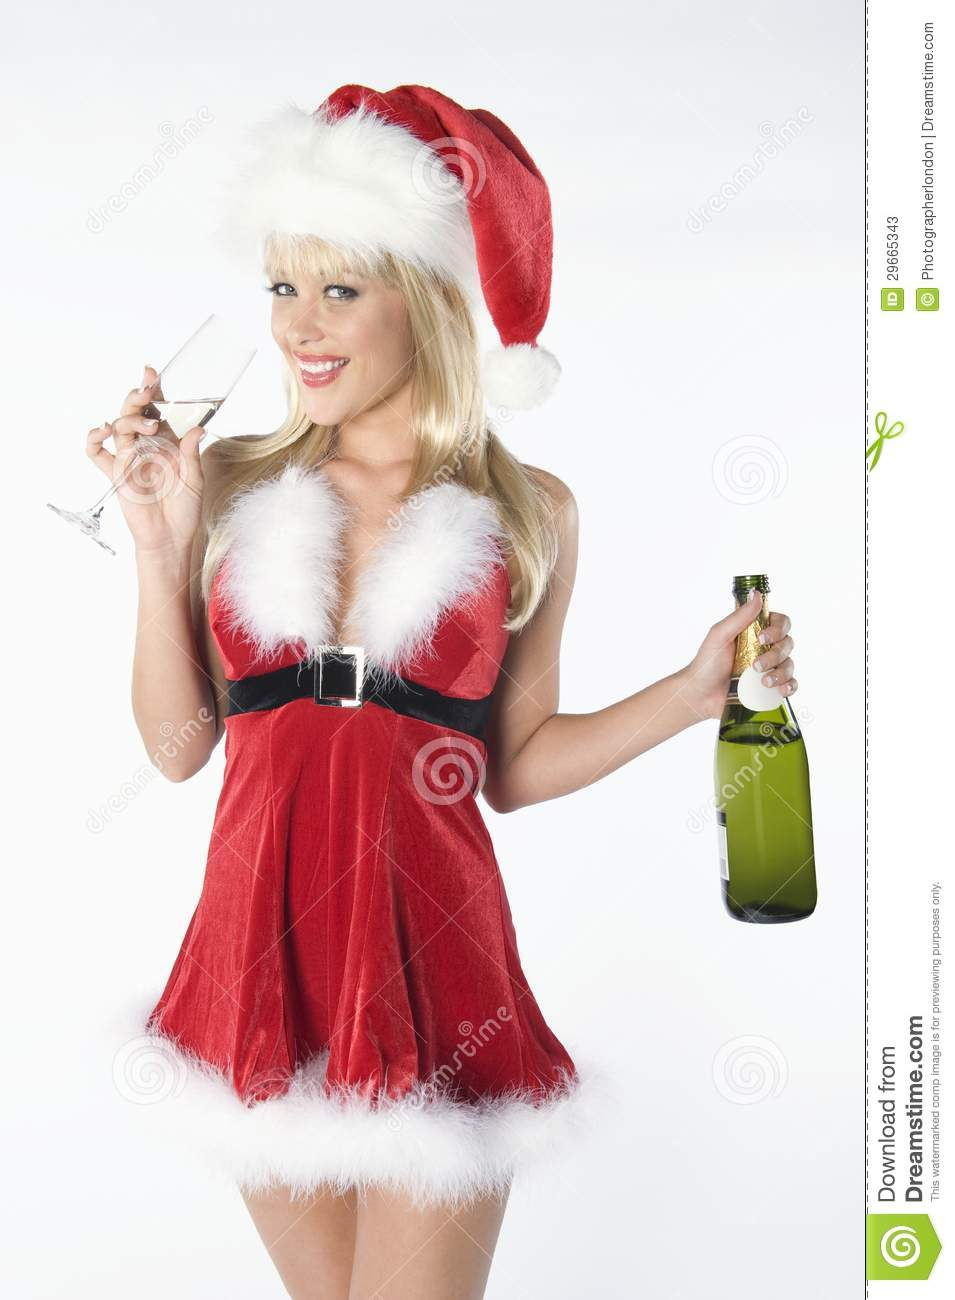 single women over 50 in santa claus Read to more intrecting facts of christmas in canada christmas  hold santa claus to be the bringer  the northern parts where single men can meet single women.